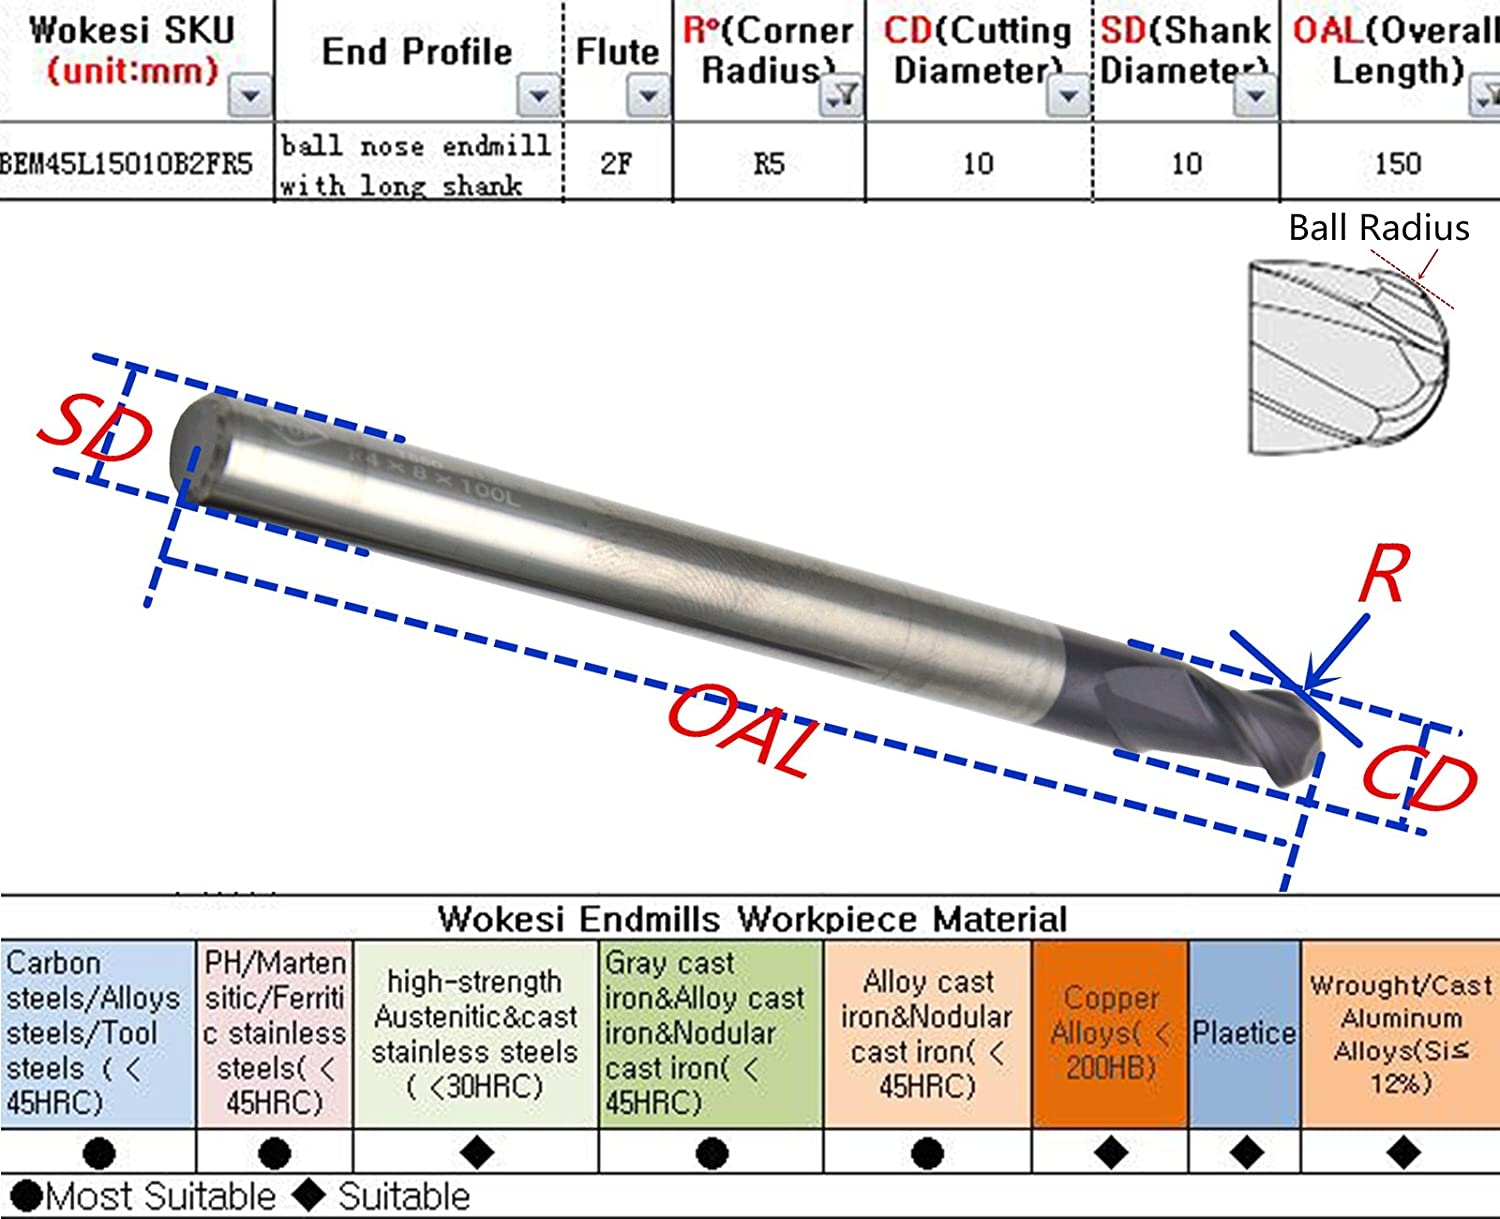 R48mmDia8mmShank100mmOAL Wokesi 4mm Cutting Radius,8mm Shank Dia,100mm OAL,HRC45,2Flutes,Extra Long,TiAlN Finish,Solid Carbide,Ball Nose End Mill Endmills CNC Router Bits Cutting Tools